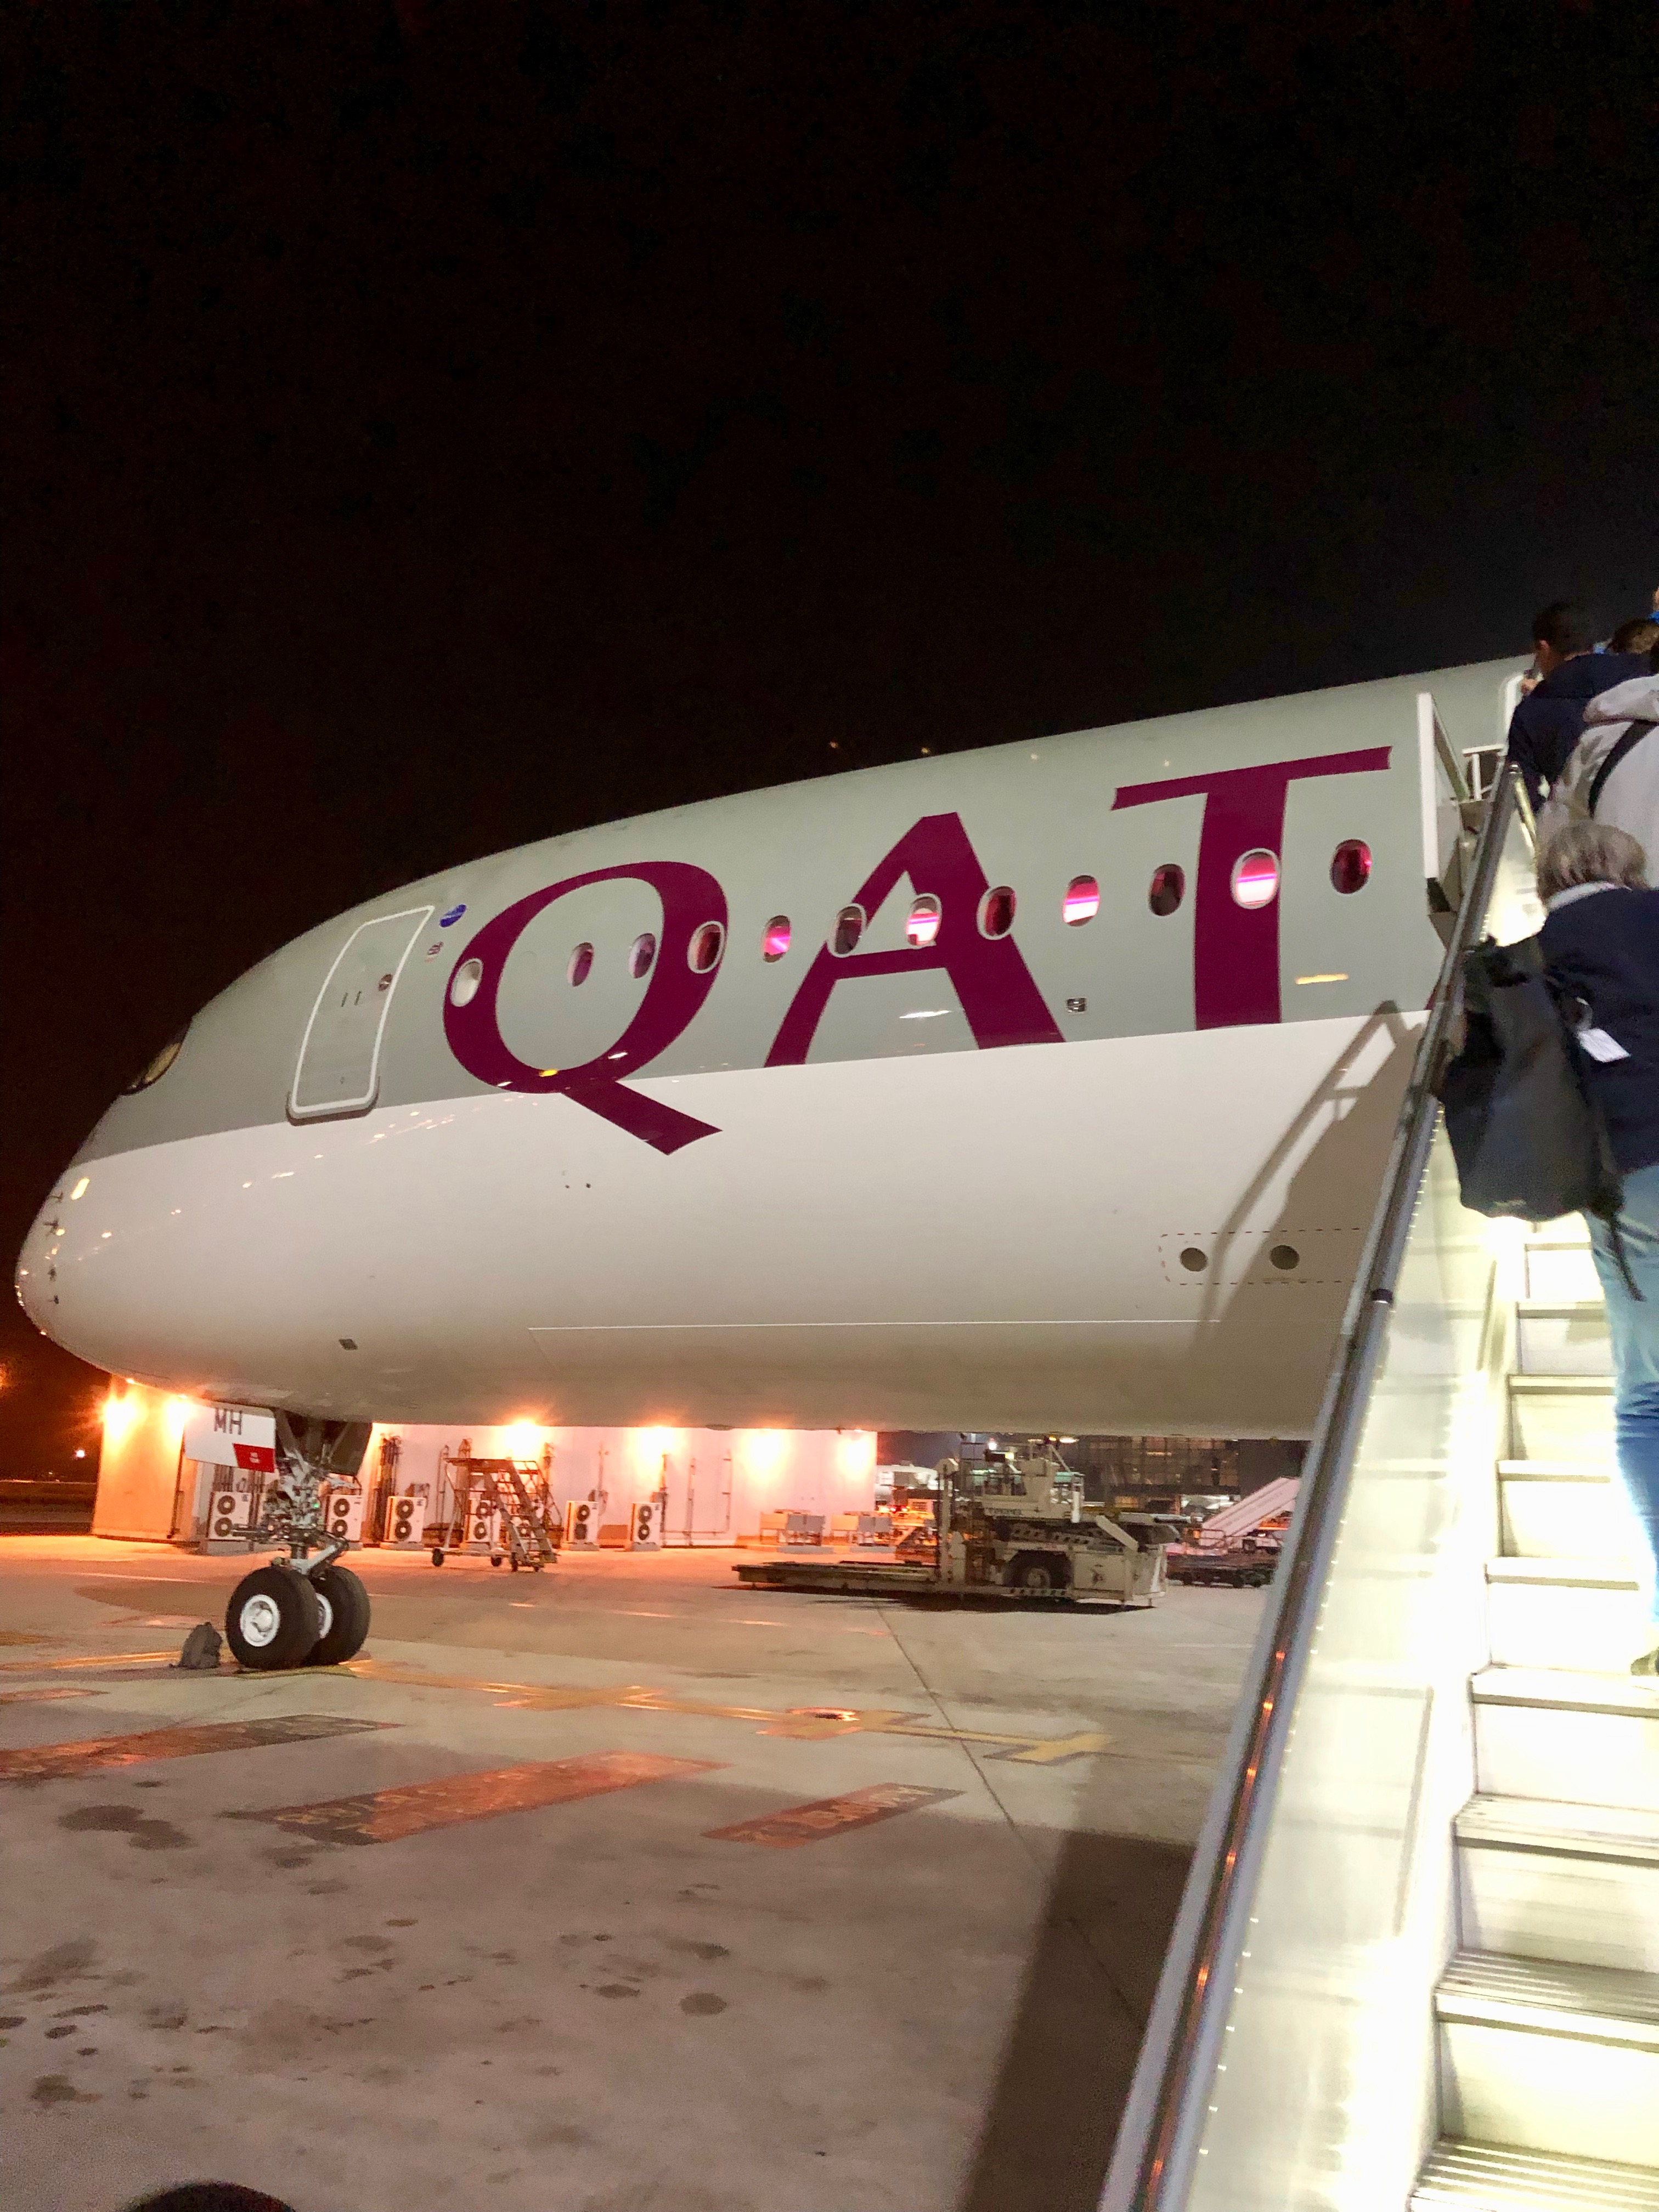 Qatar Airways A350-900 boarding via stairs